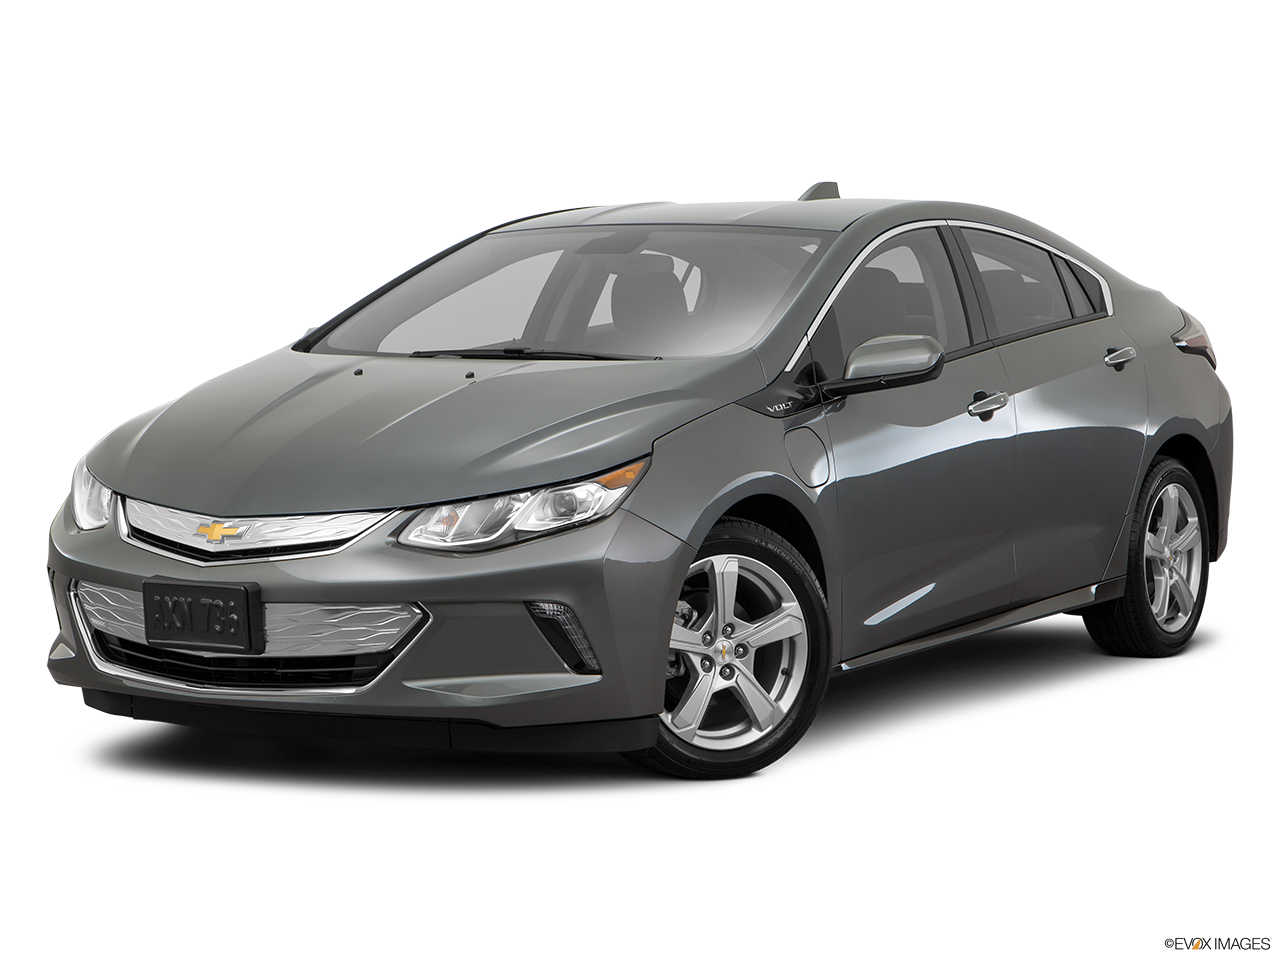 2017 chevrolet volt riverside moss bros chevrolet. Black Bedroom Furniture Sets. Home Design Ideas